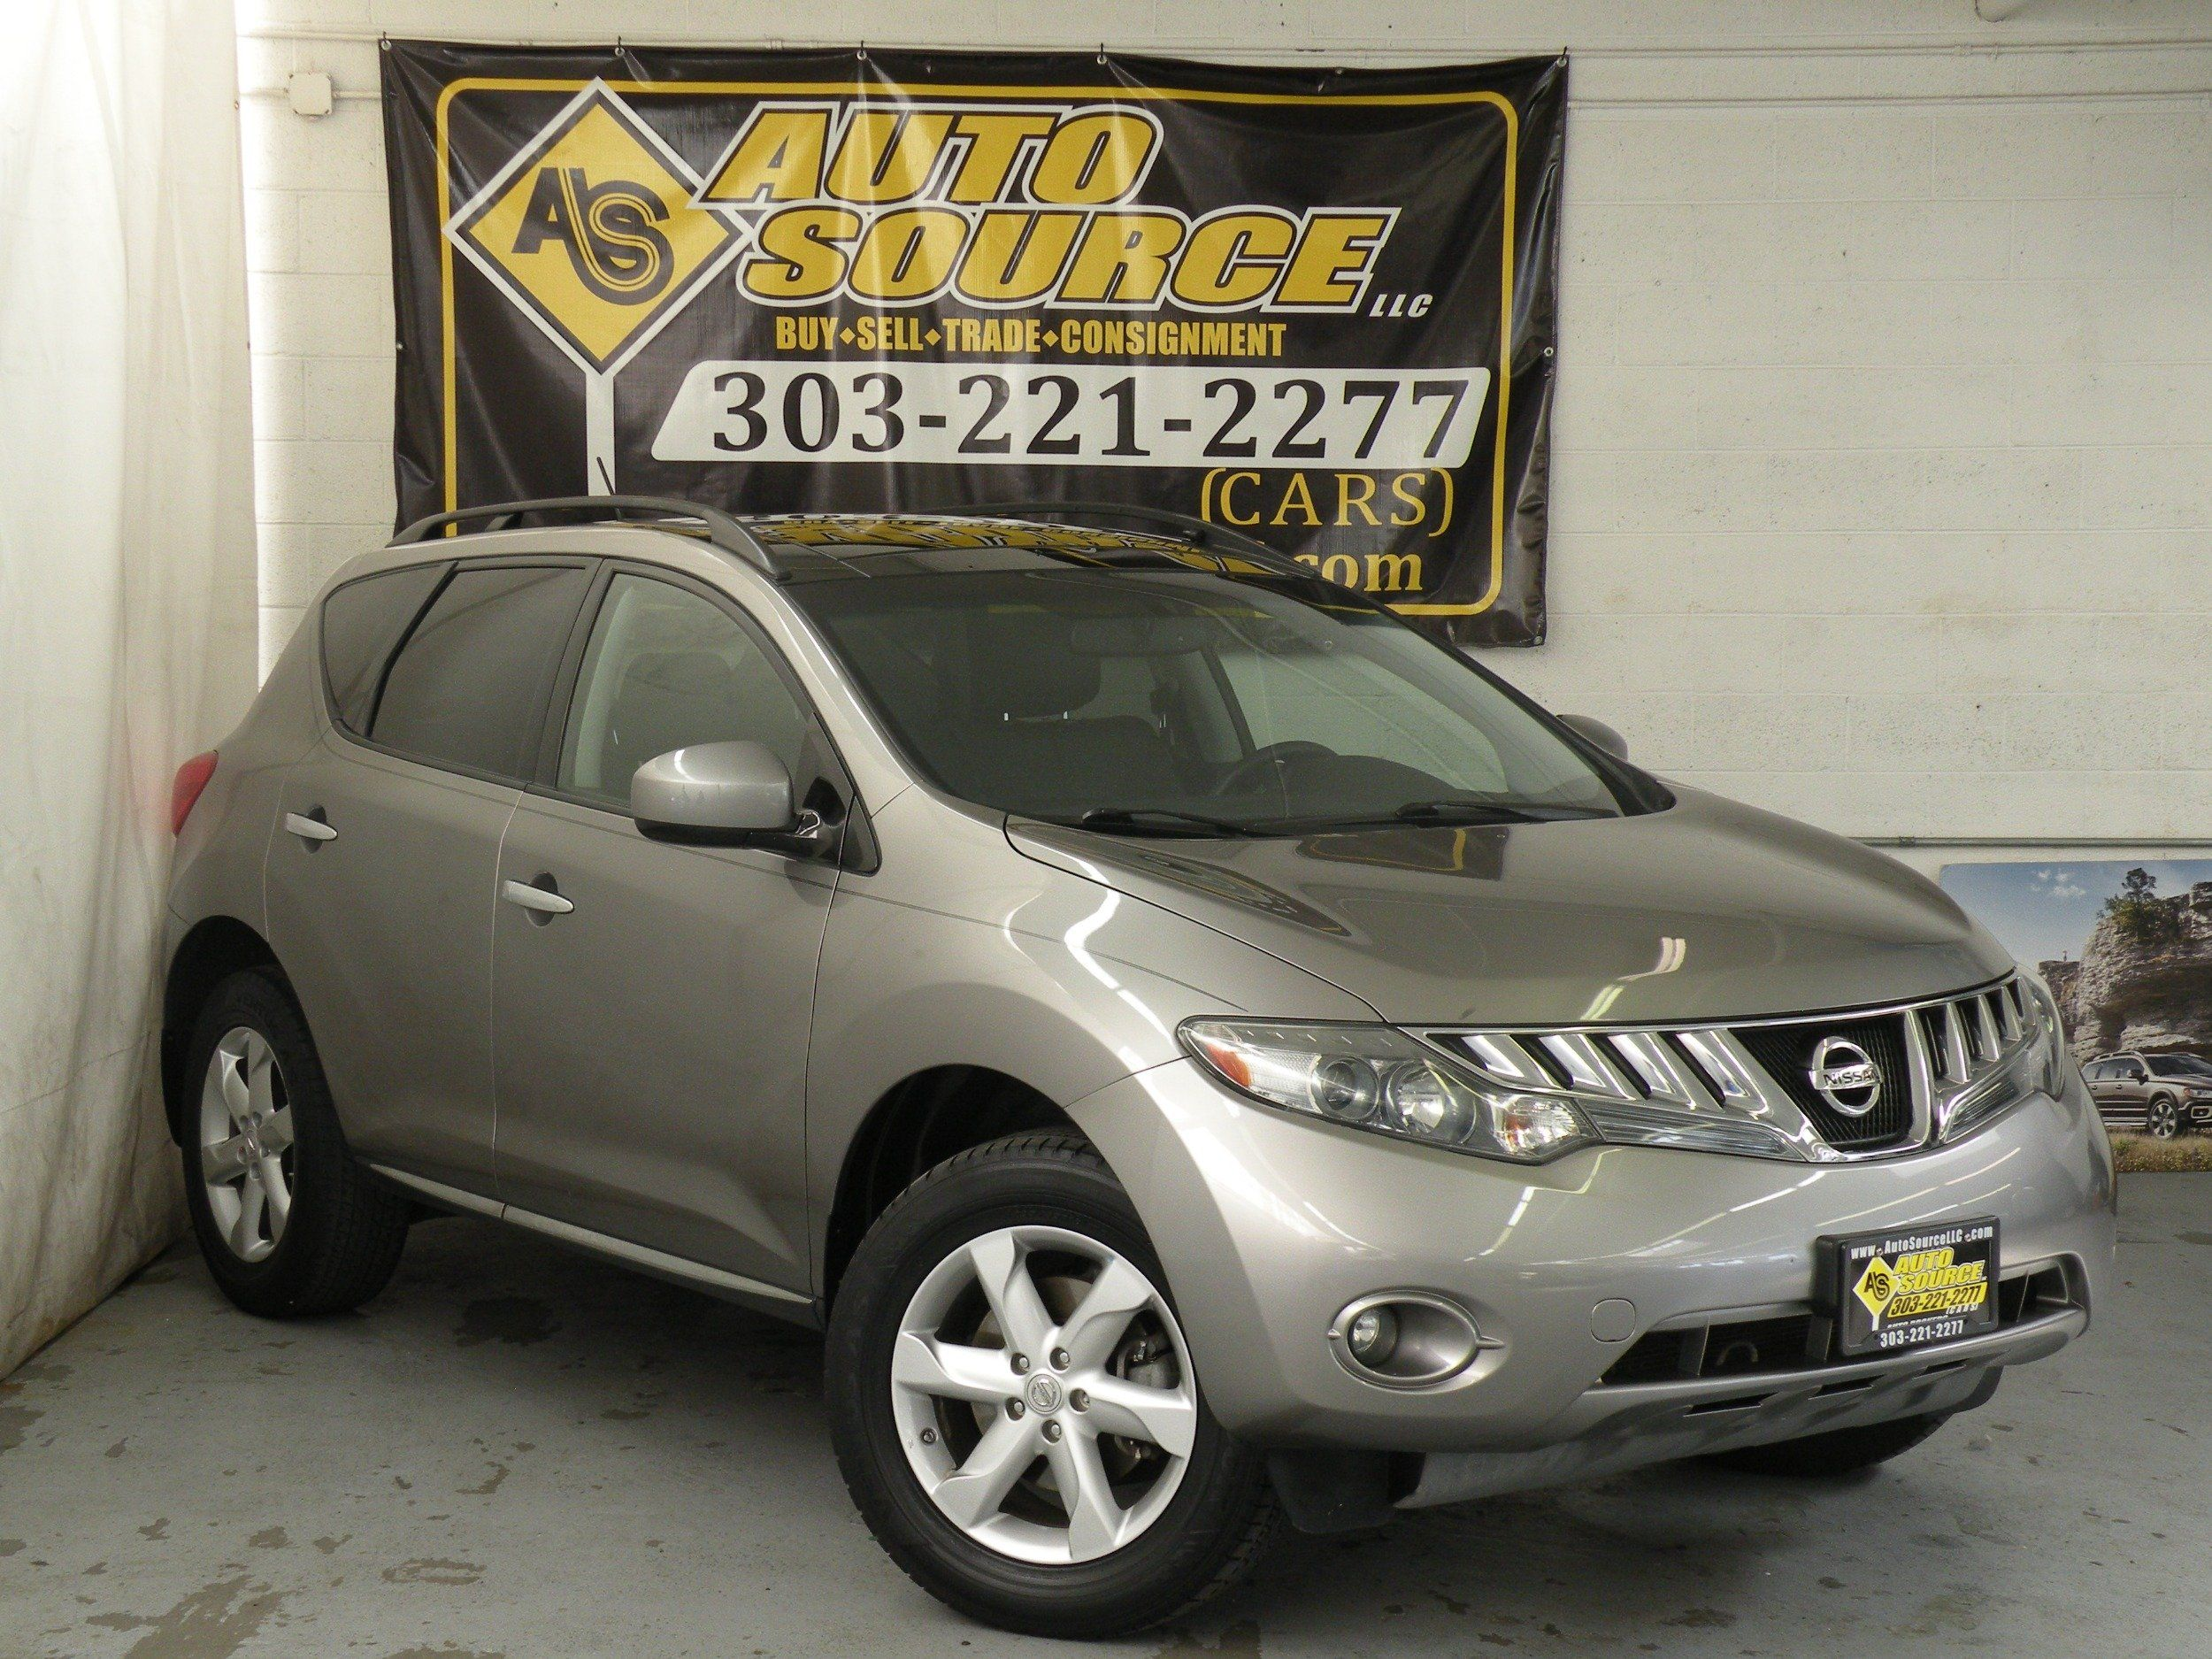 Used Cars Denver Beautiful Best Used Cars Dealers In Denver Used Cars Denver Co Auto source